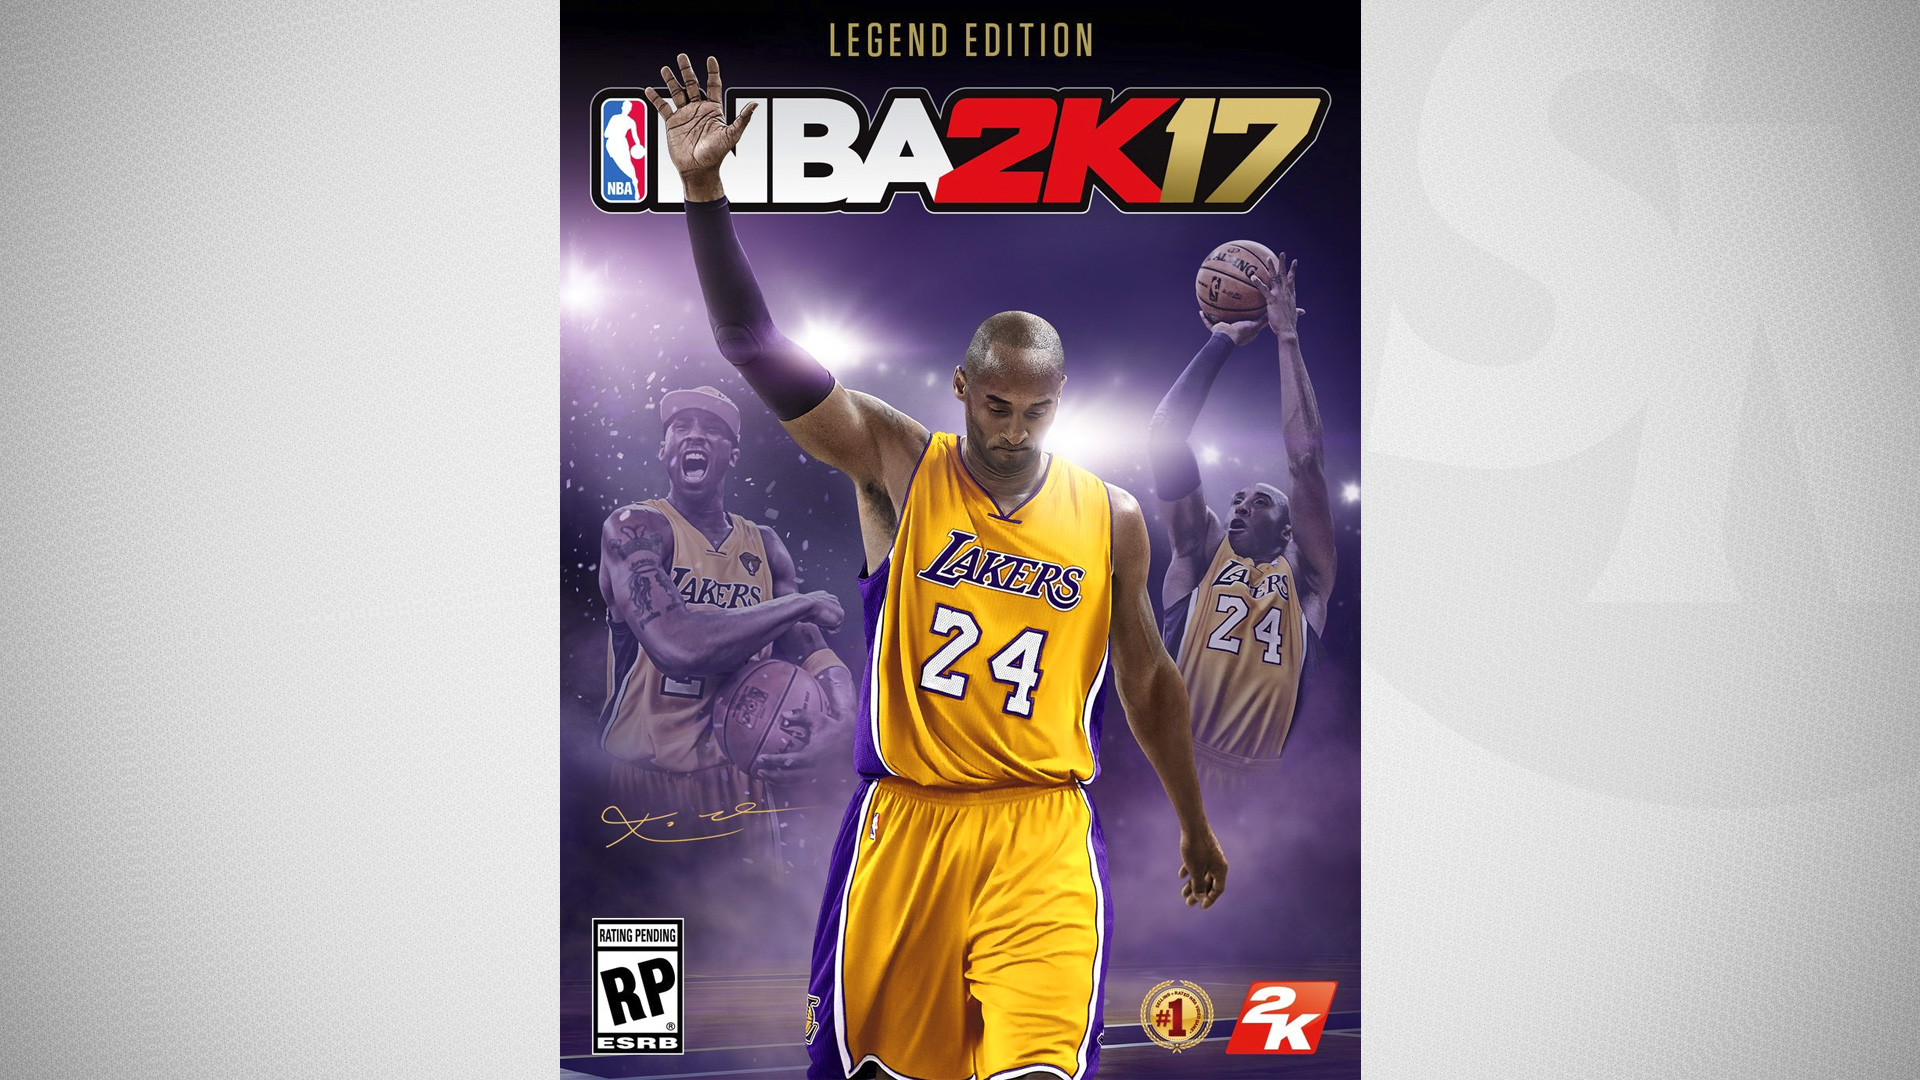 nba 2k17 will use kobe bryant as cover photo